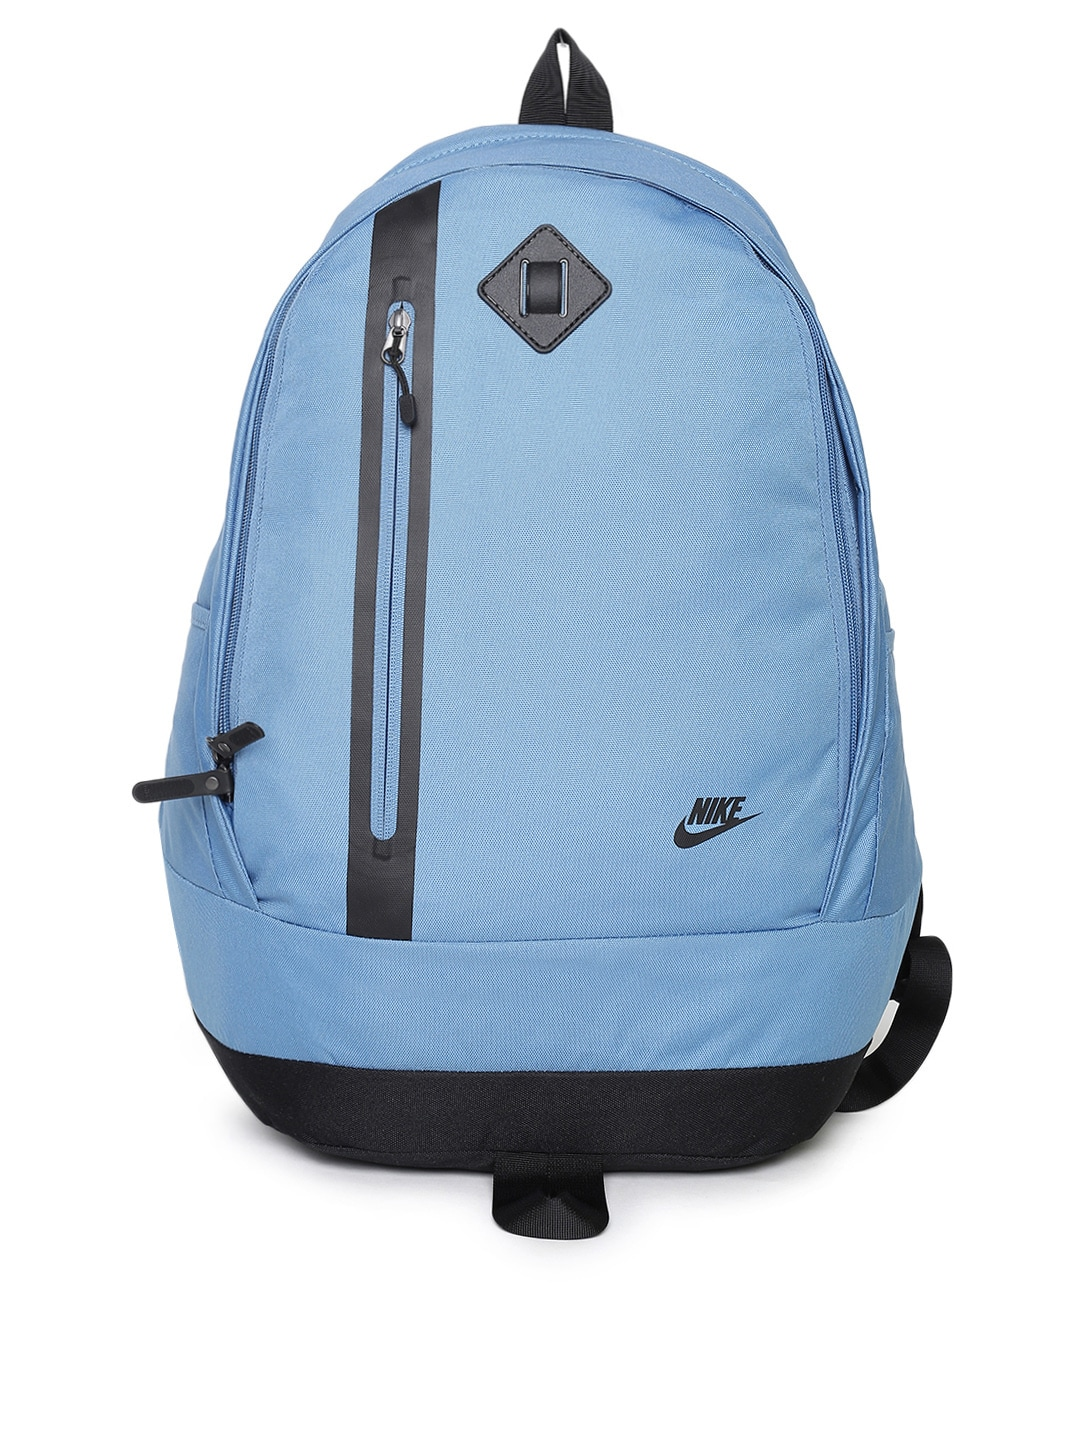 Nike Just Do It Mini Backpack Pink And Blue- Fenix Toulouse Handball 5494d3351f583